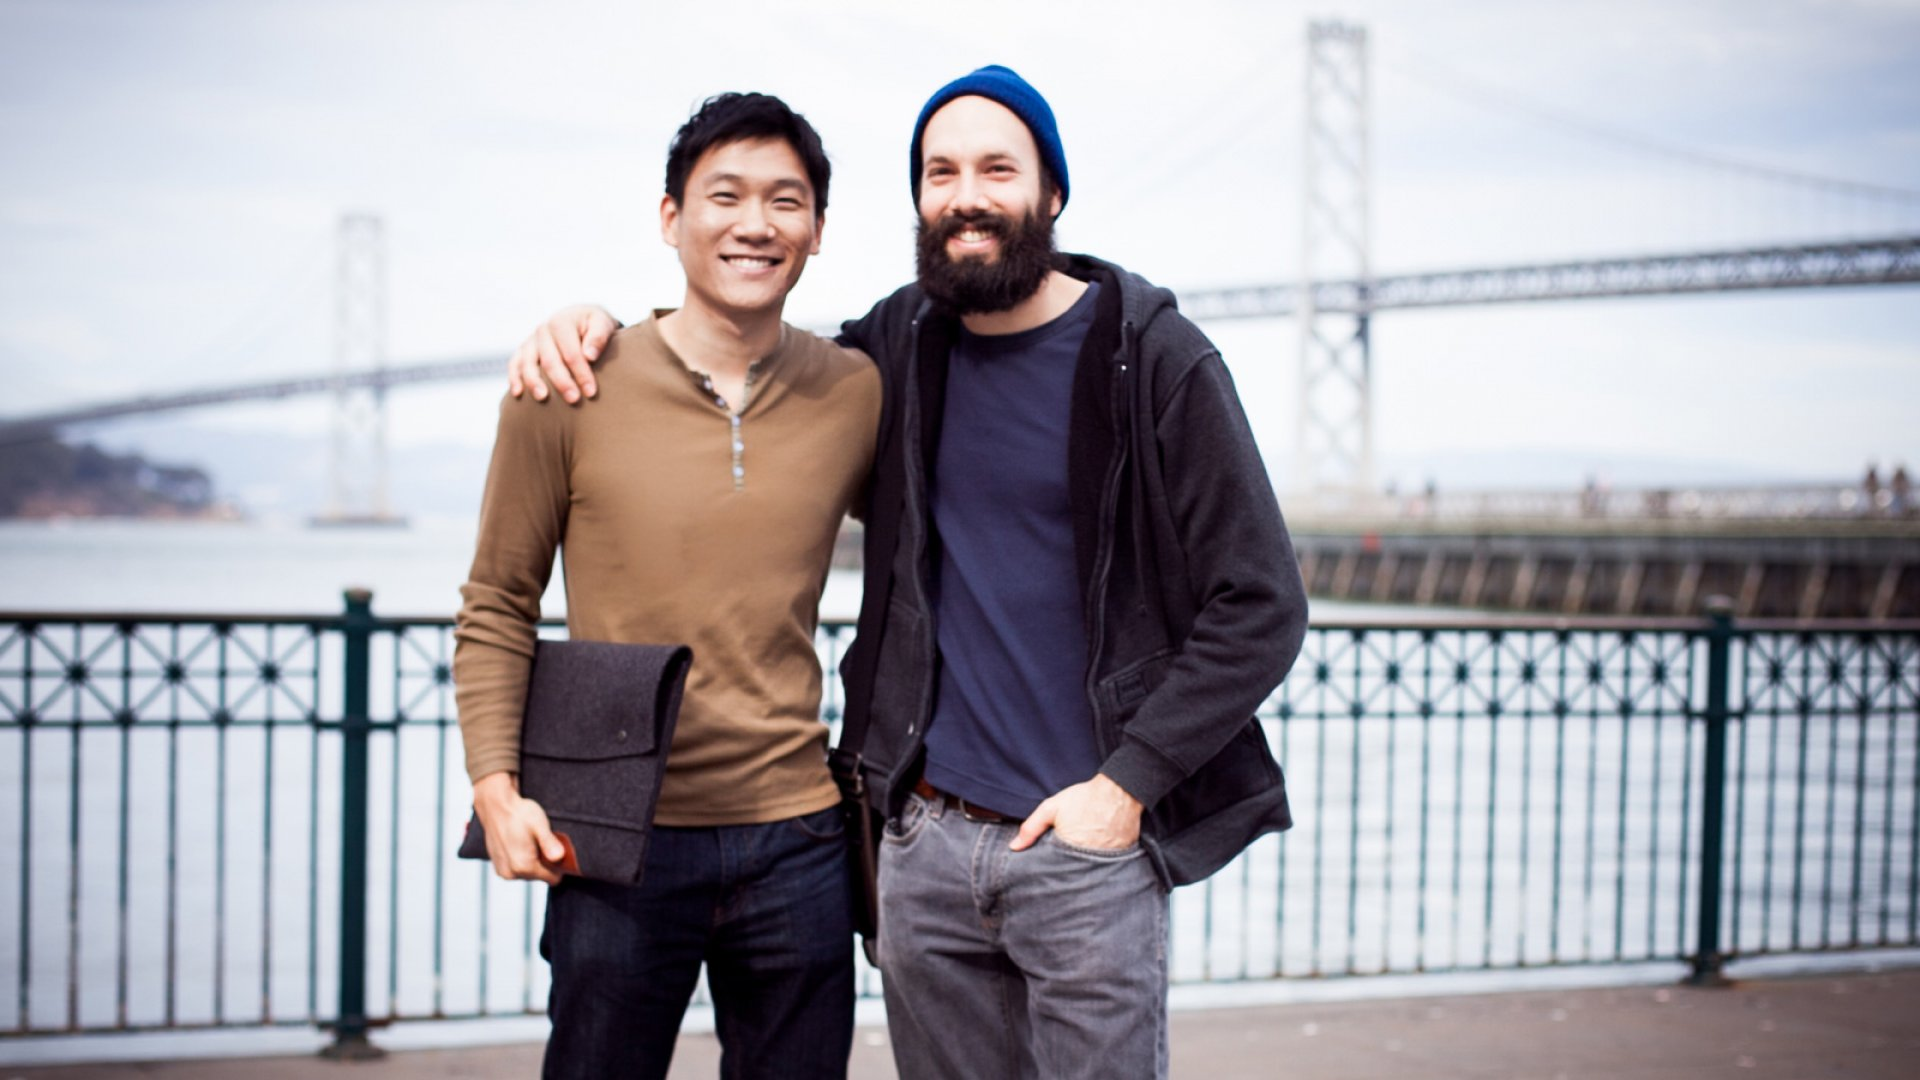 """Sam Yam (left) and Jack Conte (right) launched a subscription service that enables supporters to automate pledges each month. """"We just started seeing immediate traction,"""" Conte says, """"especially from the YouTube community."""" <br> <br>"""